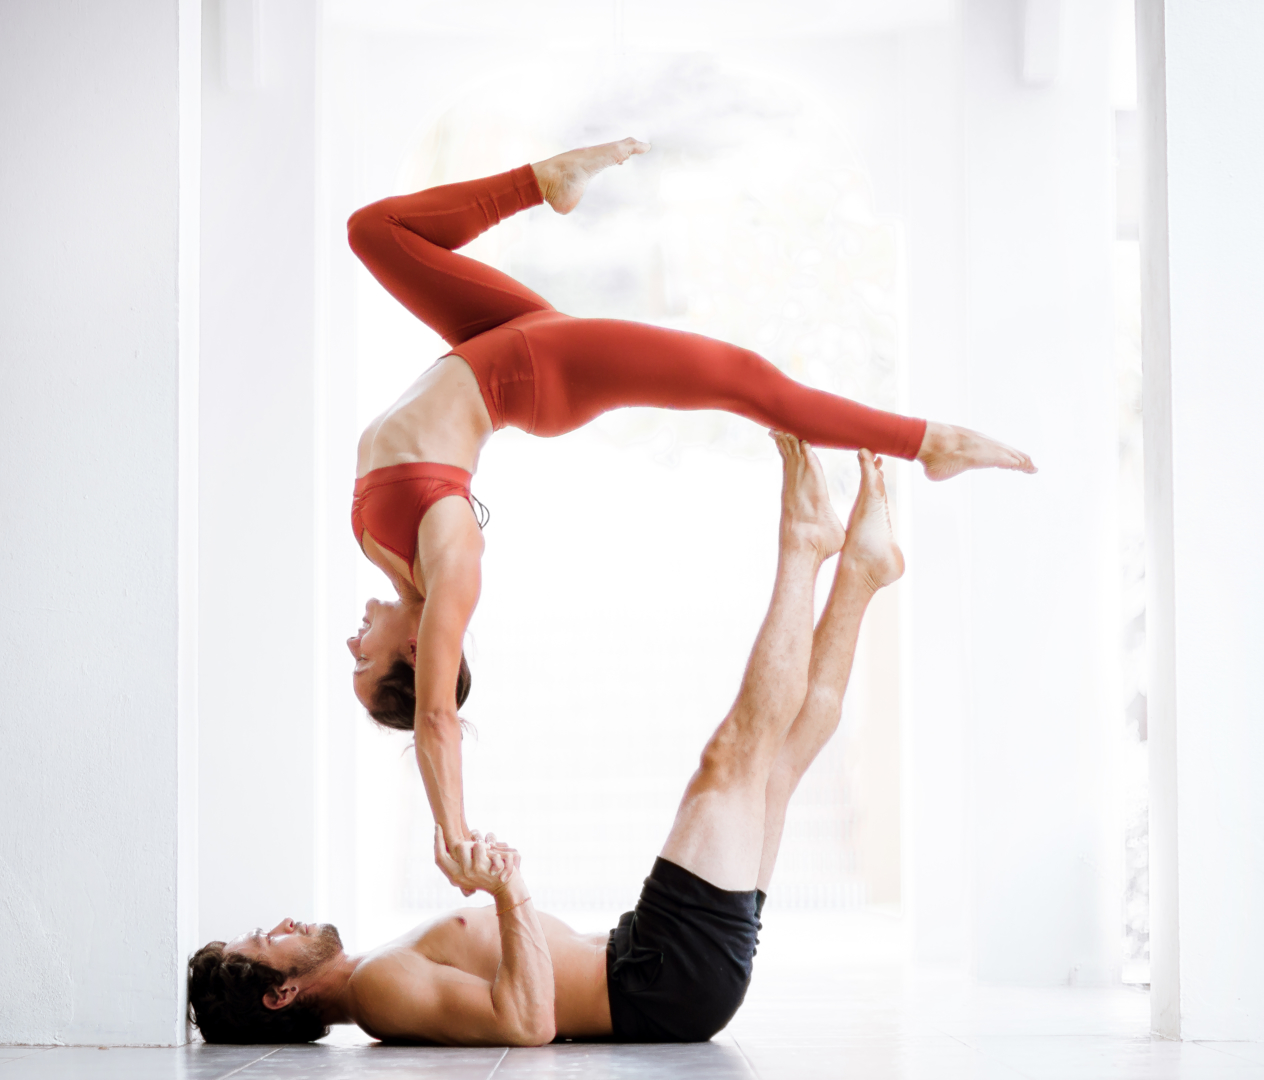 200-hr | FIT FLOW FLY - Our foundational 200-hour program will deepen your understanding of all postures and flows, connect anatomy to movement, build your confidence, and develop your brand.